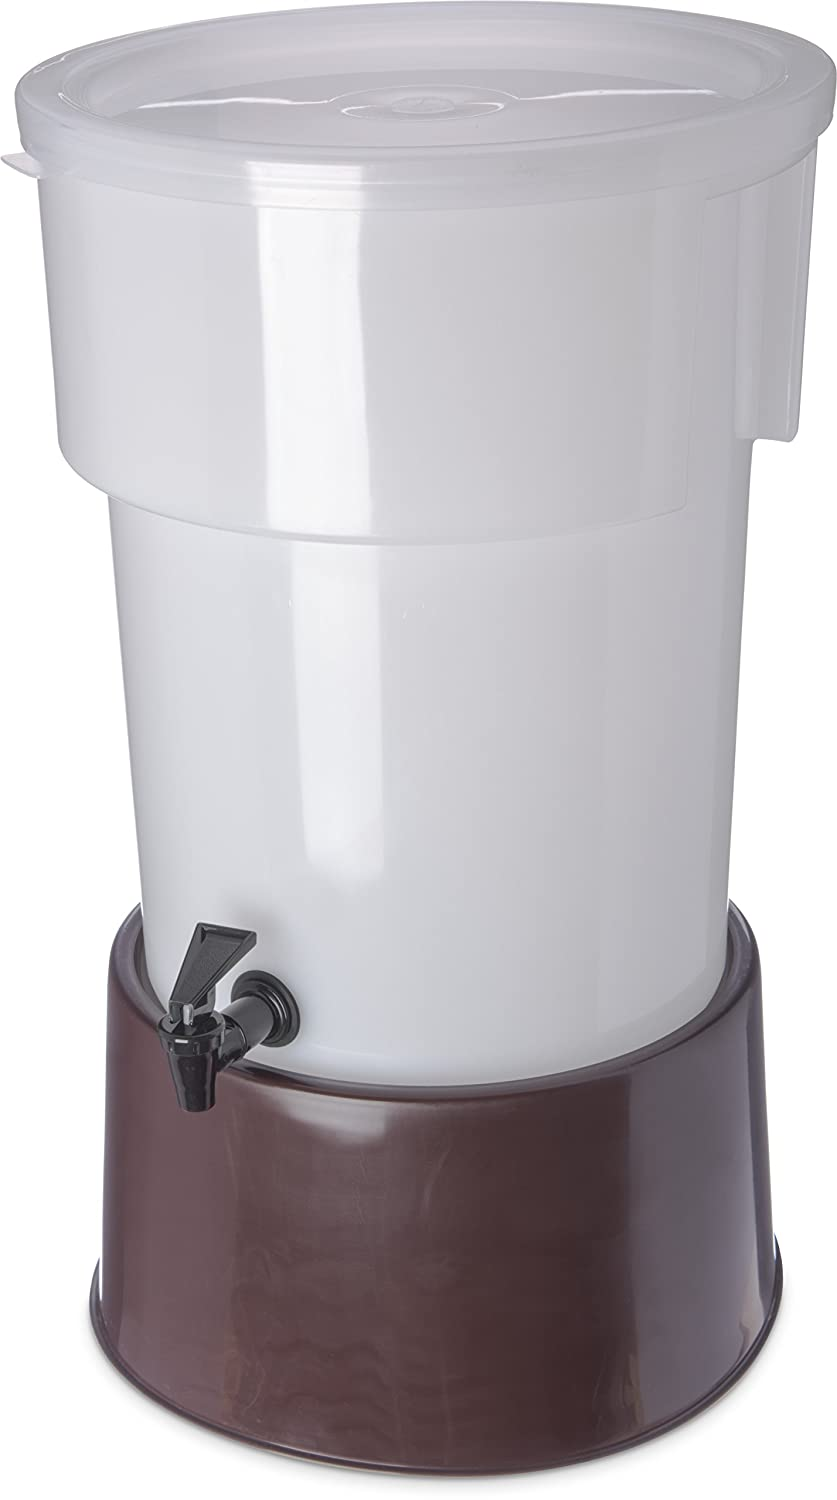 Carlisle 223001 Brown 5 Gallon Round Beverage Dispenser with Base